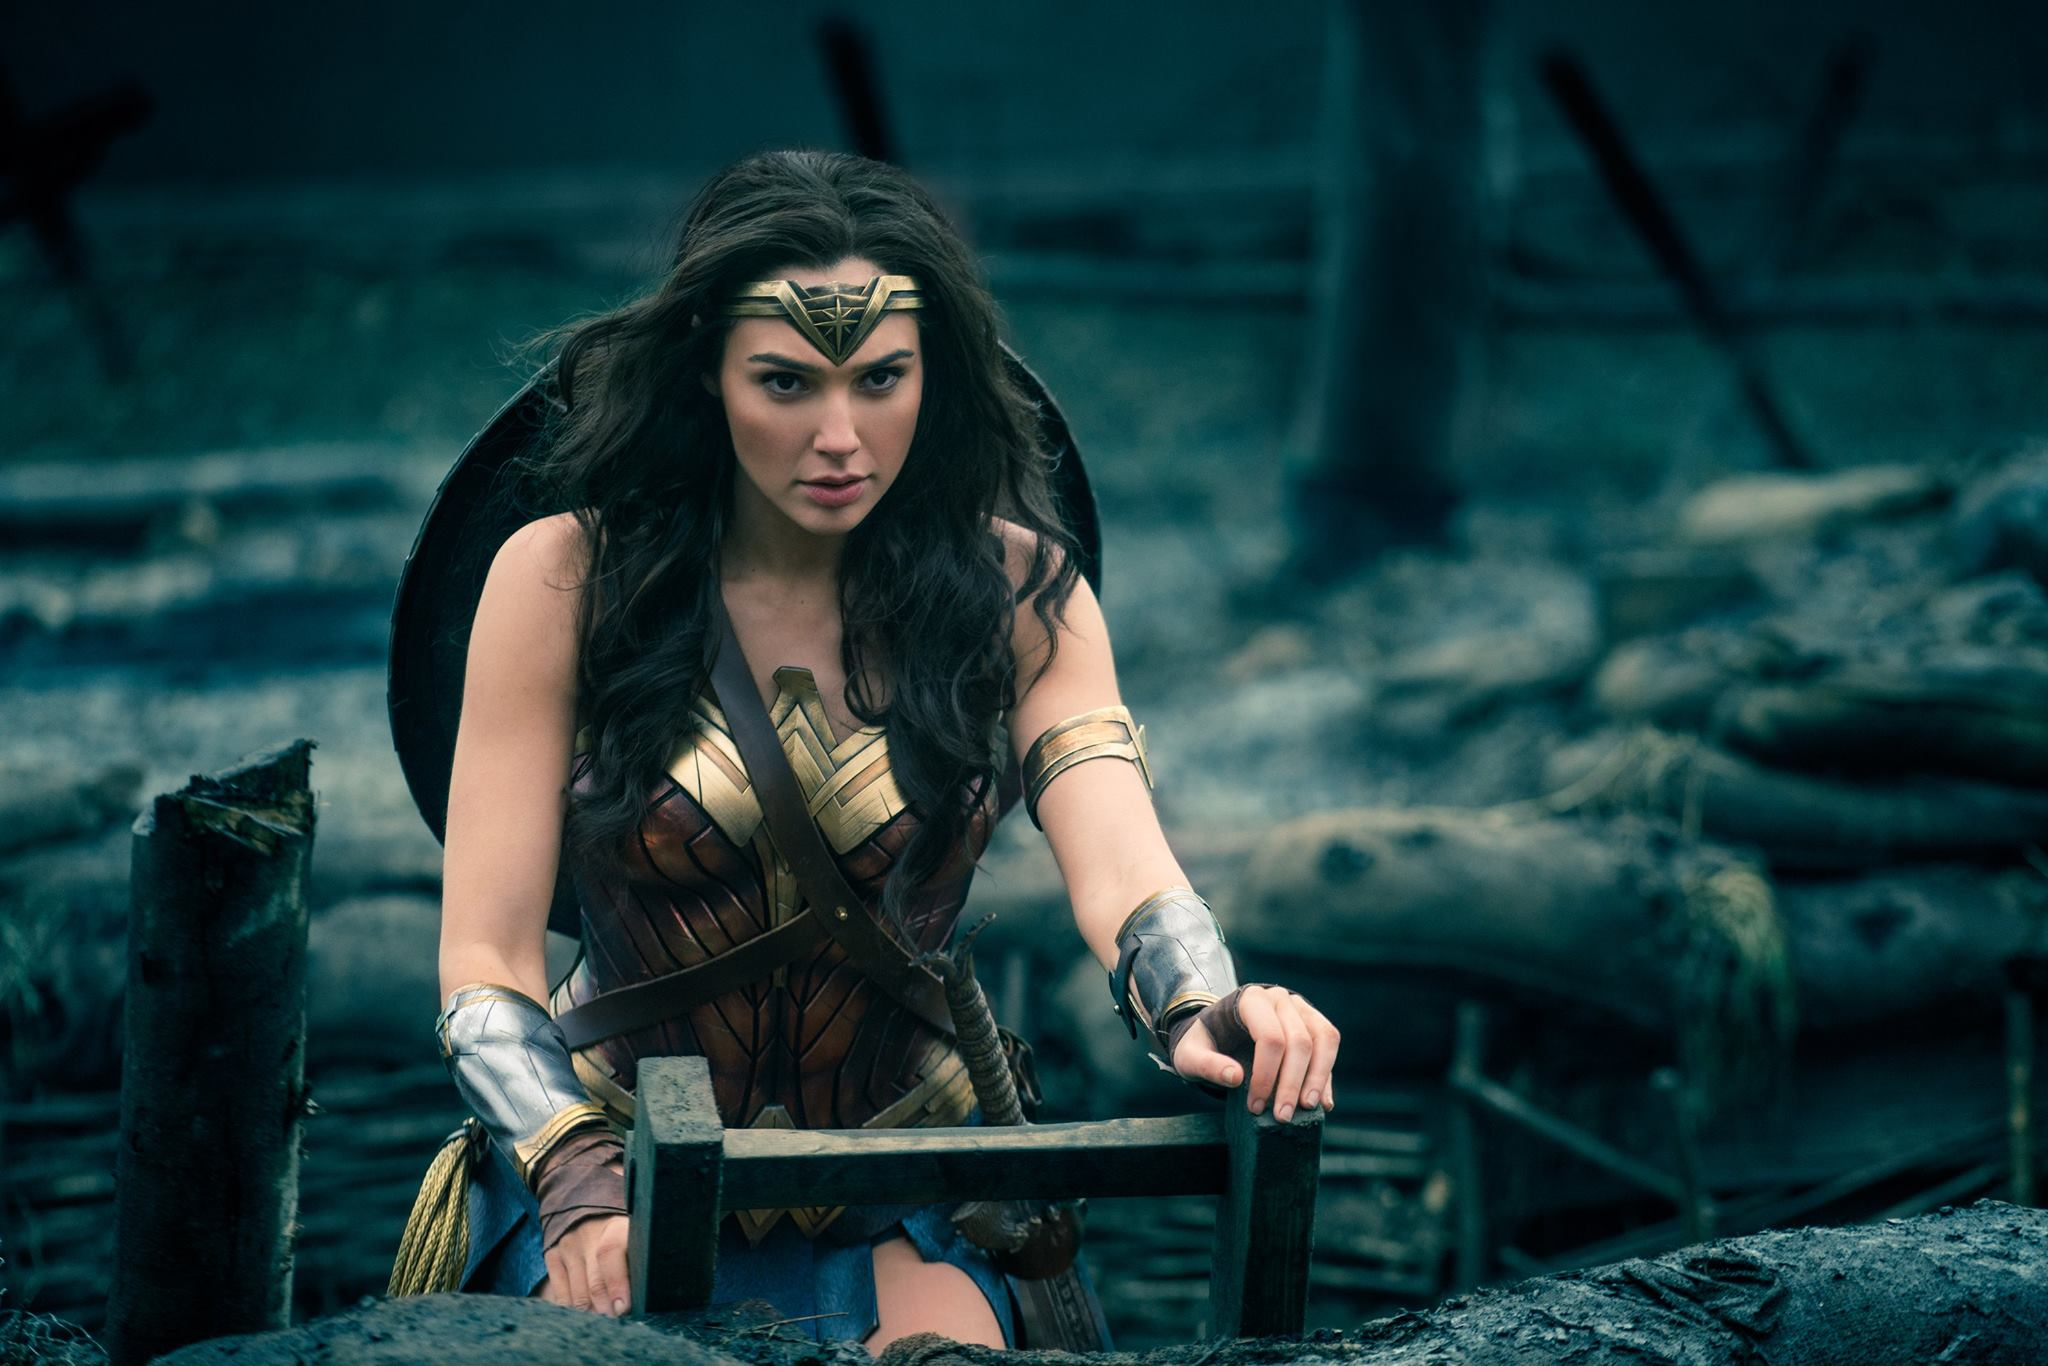 WONDER WOMAN Sequel Update from Patty Jenkins